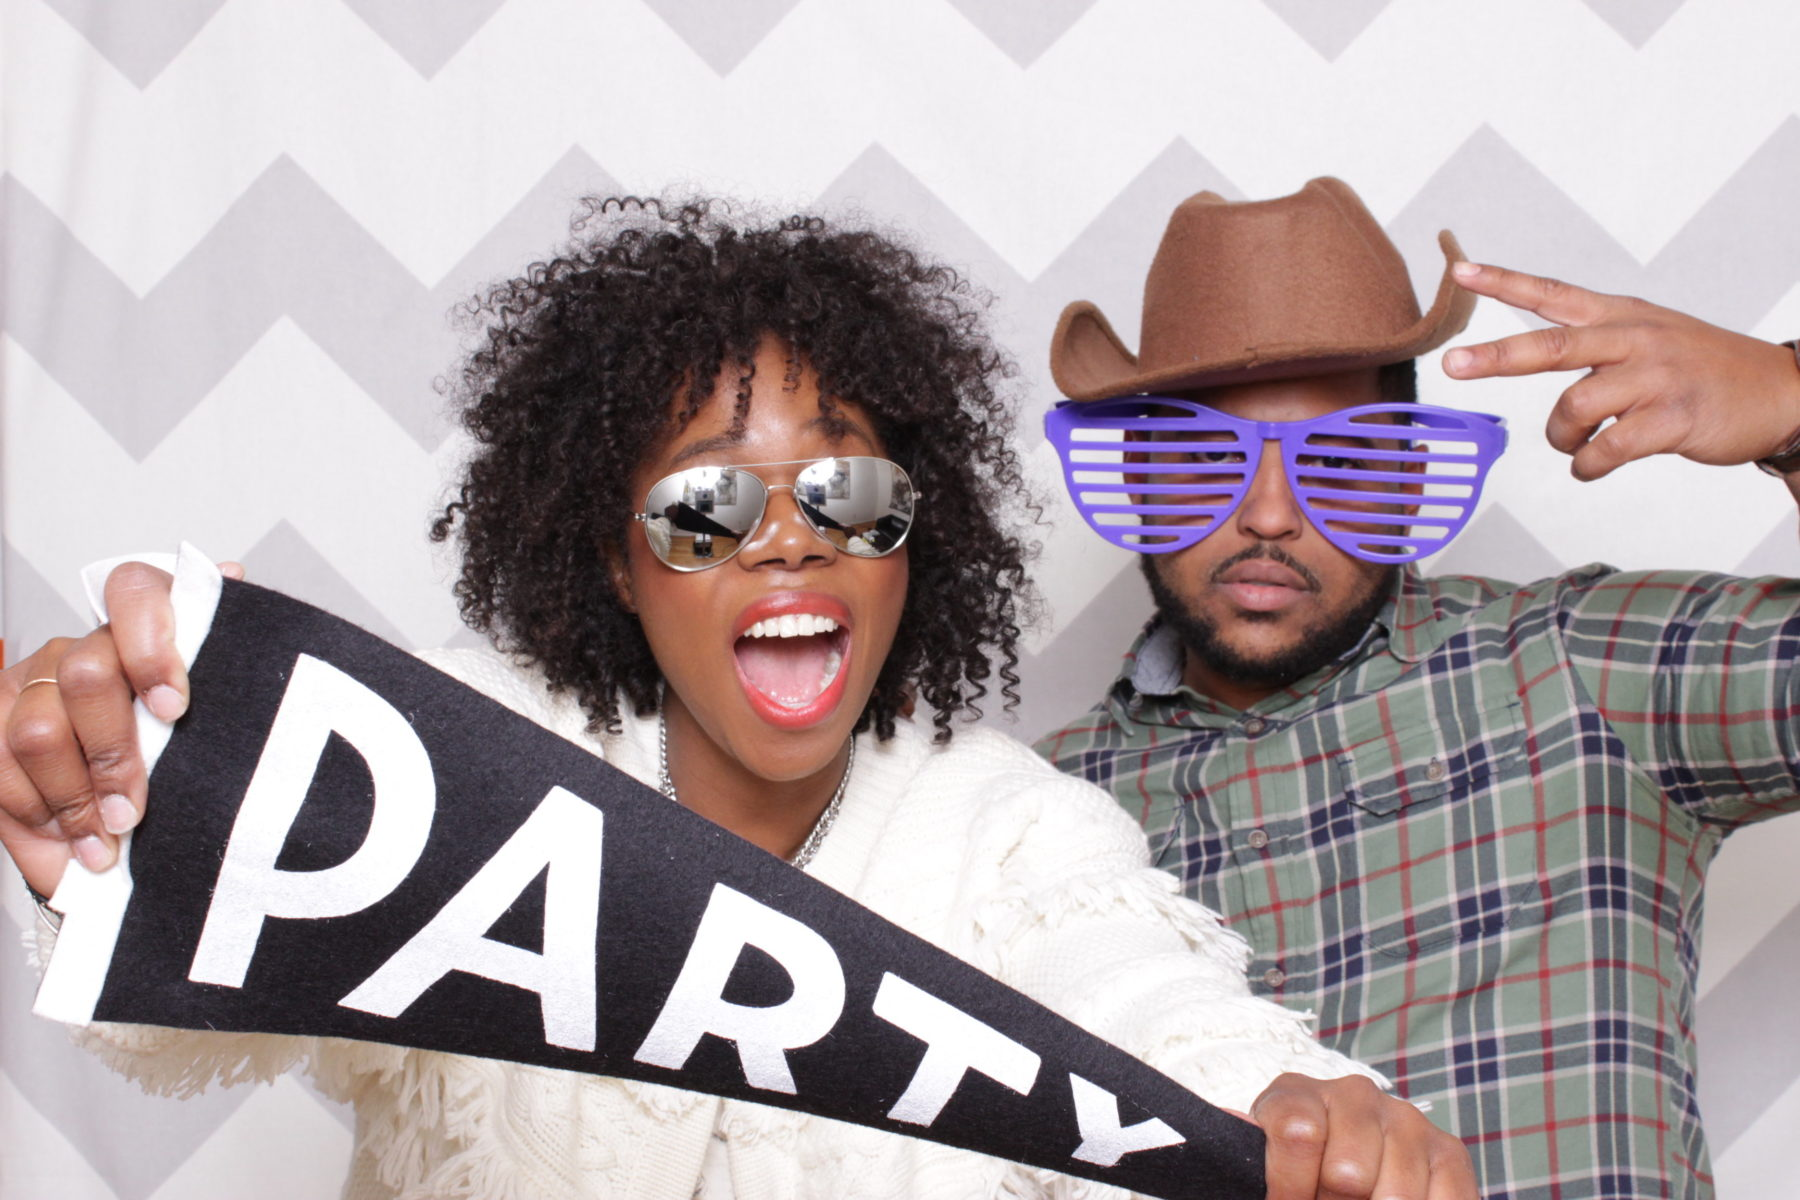 Top 5 Photo Booth Props